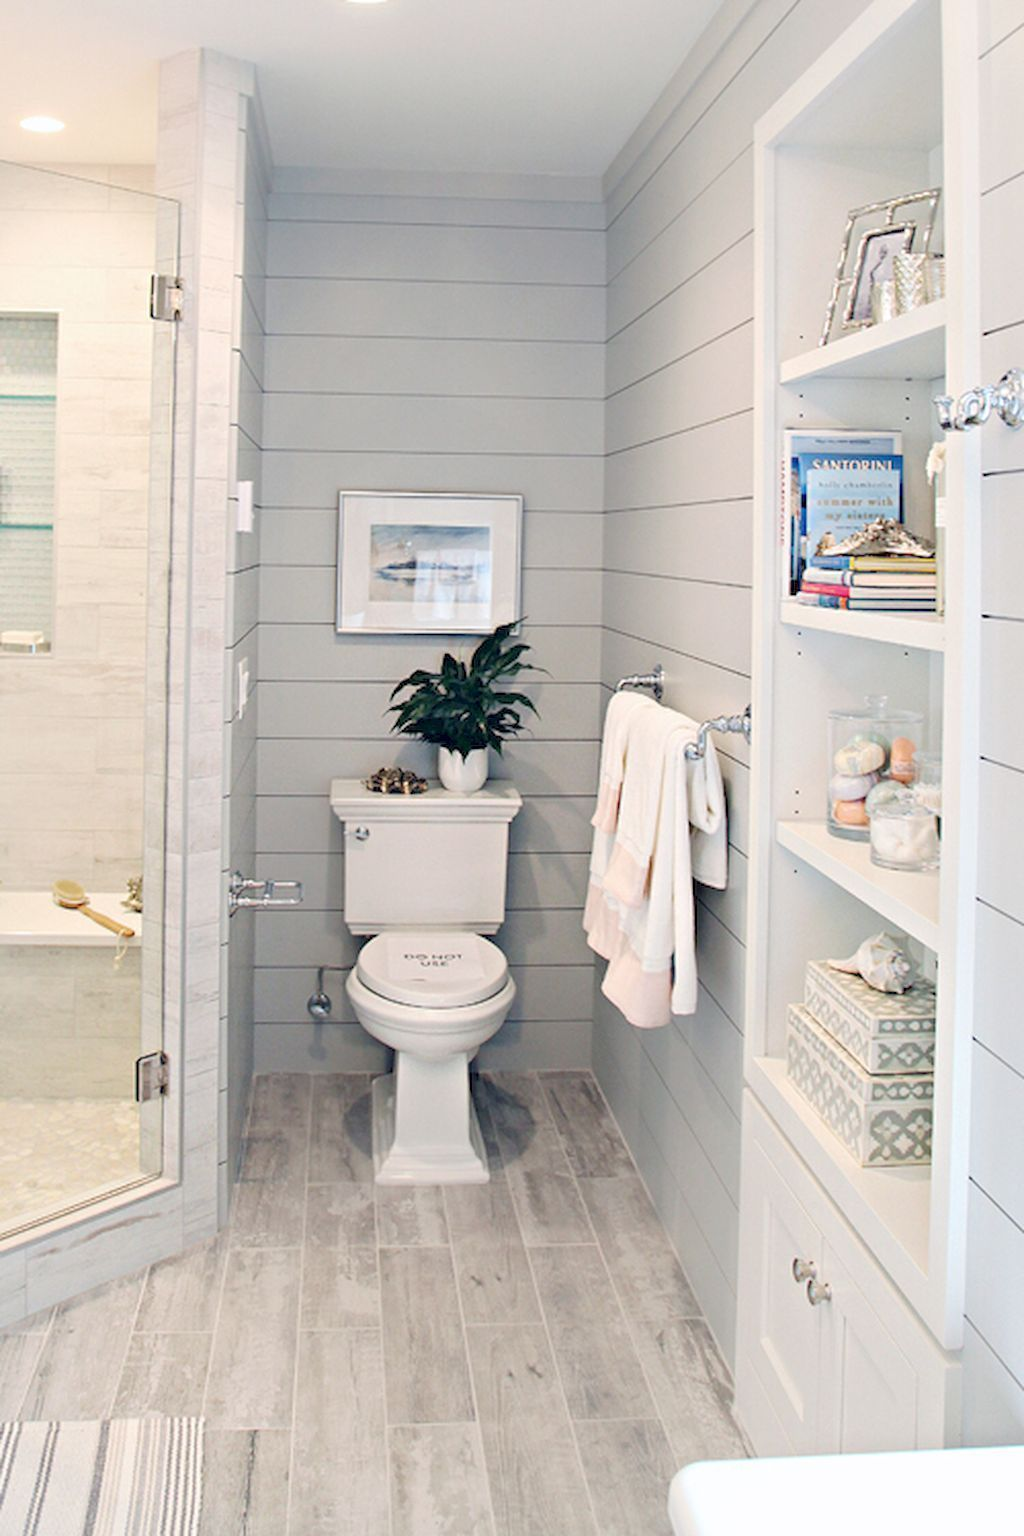 50 Half Bathroom Ideas That Will Impress Your Guests And Upgrade Your House Bathrooms Remodel Small Master Bathroom Small Bathroom Remodel